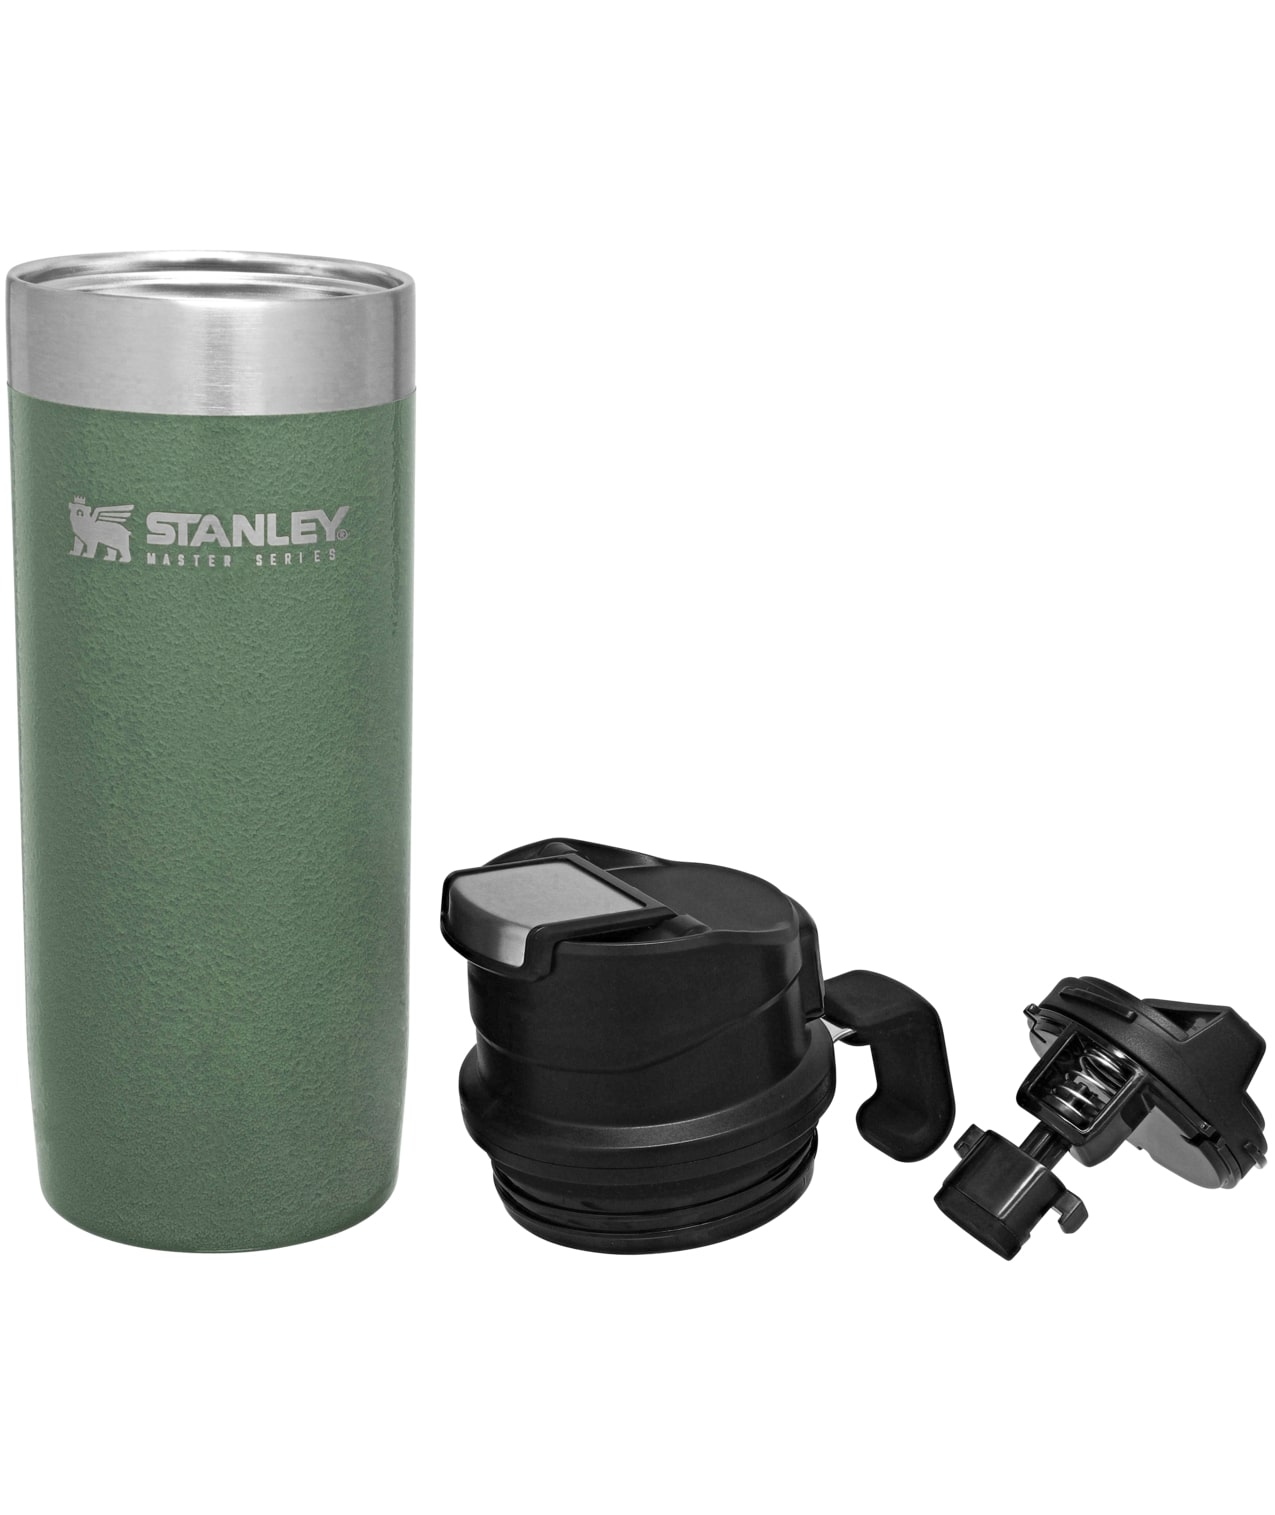 Bình giữ nhiệt Stanley Master Unbreakable Trigger Action Mug 16oz | 470ml – Green